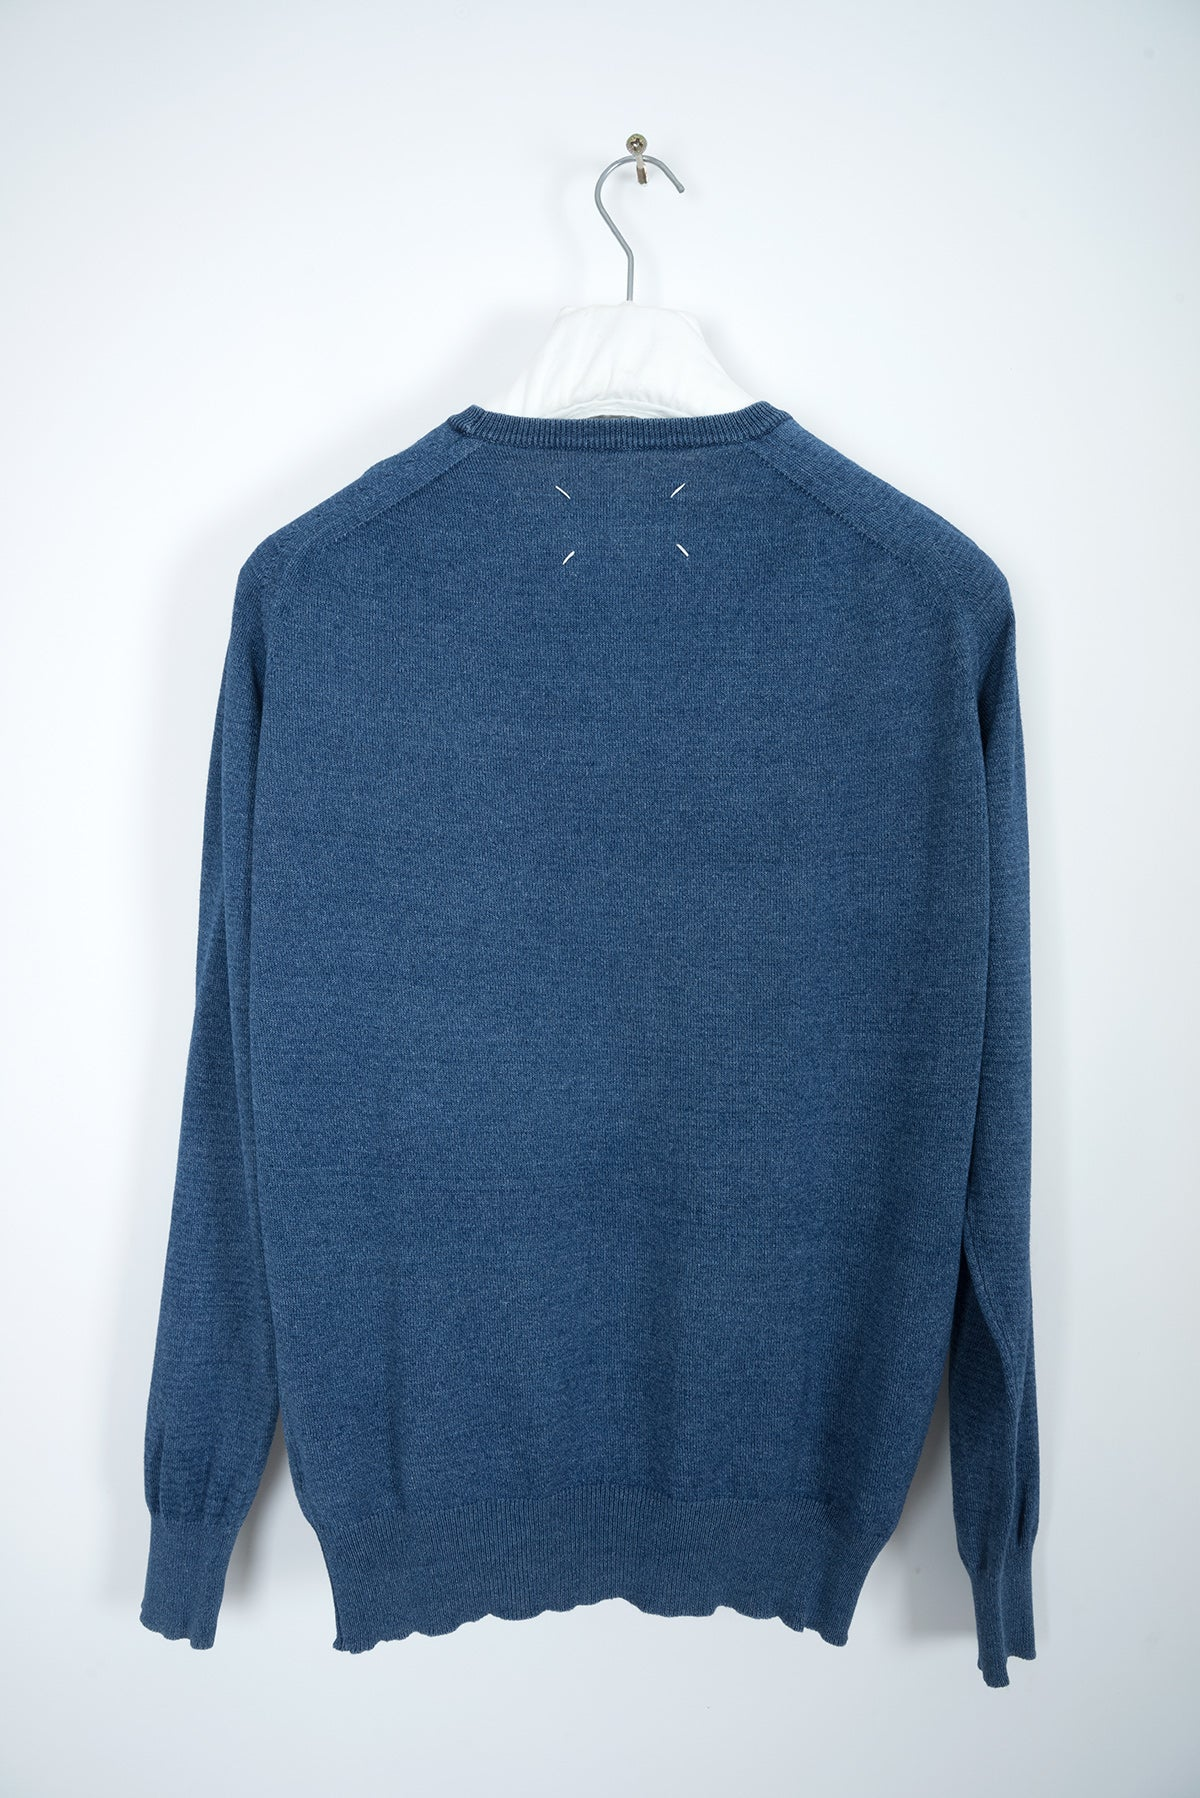 2001 S/S FAUX DENIM SWEATER IN COTTON BY MISS DEANNA